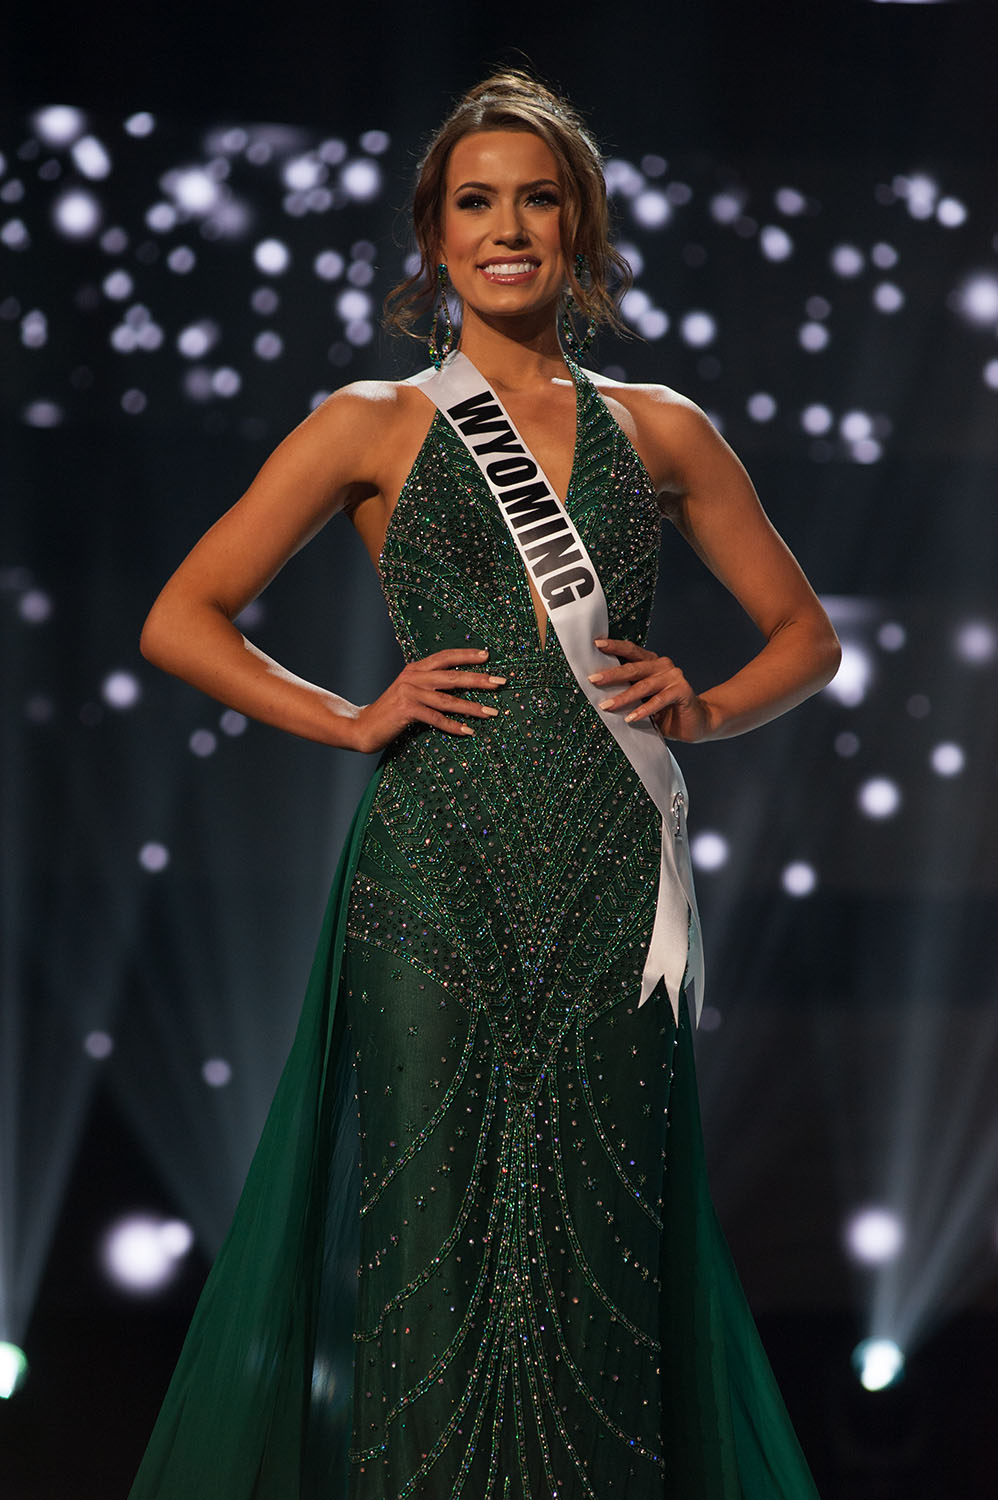 Miss Wyoming USA 2019